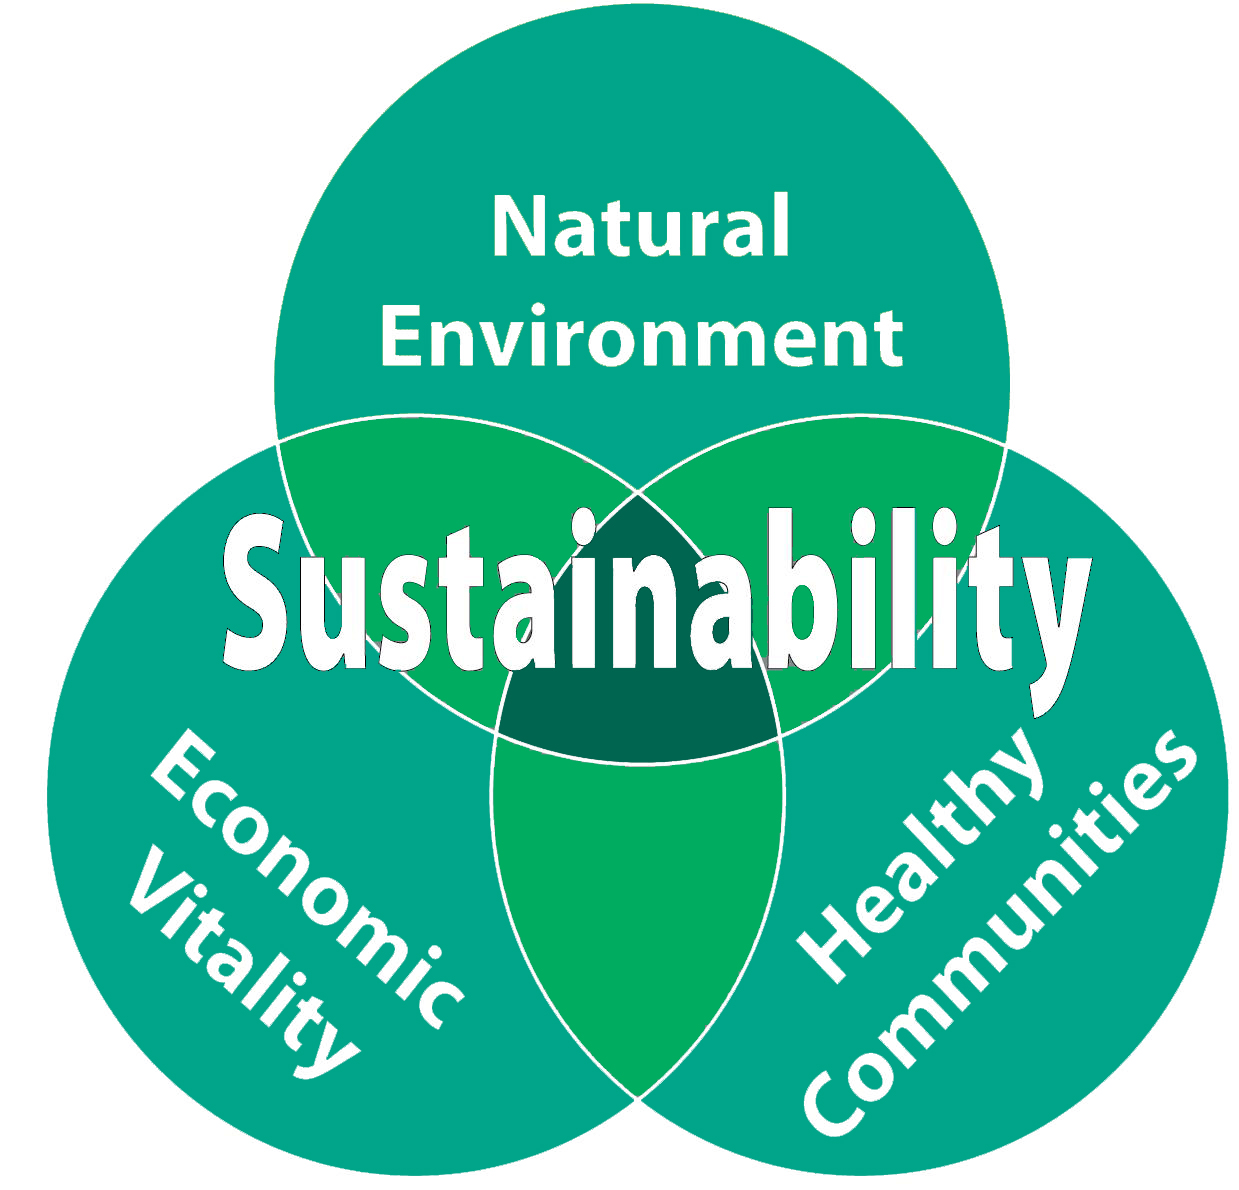 explore sustainable design principles to help develop solutions